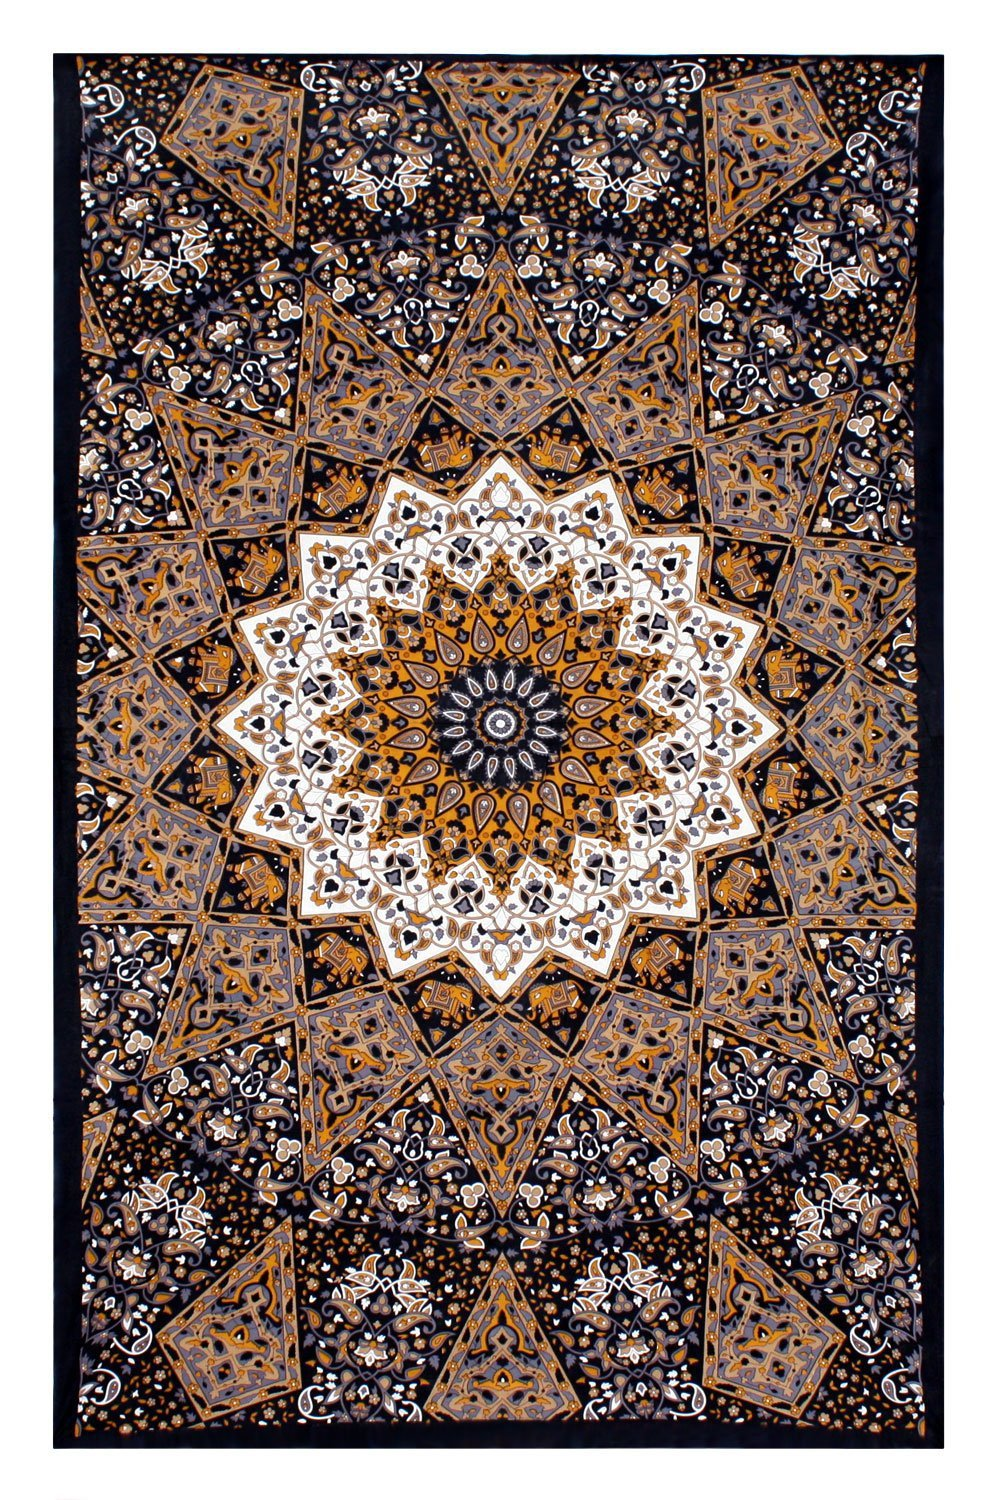 geometric indian pattern picture home decor wall mandala tapestry bohemian polyester fabric tapestries wall hangings cloth